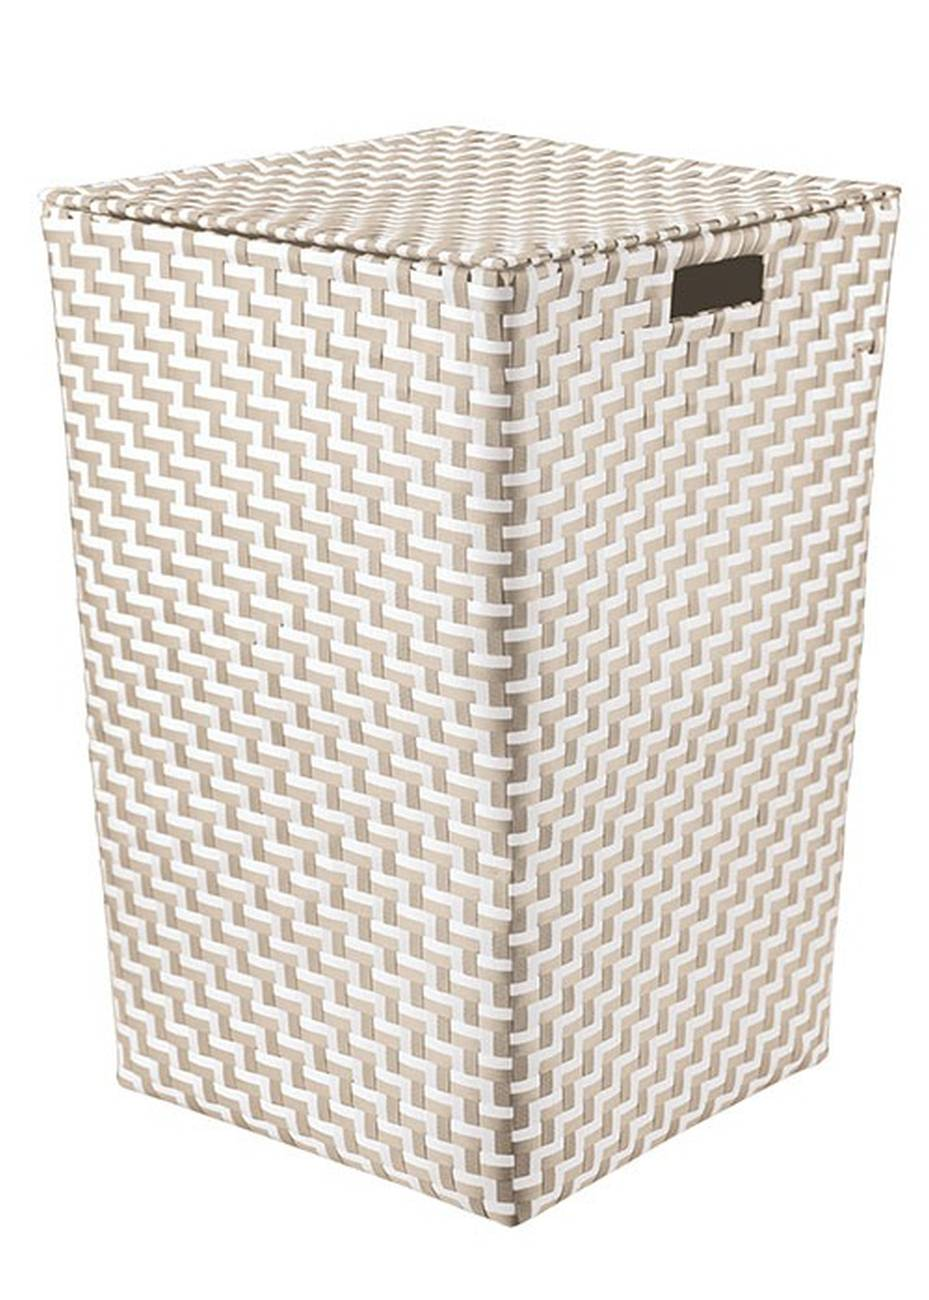 Wäschebox Double Laundry Box 100 % Polypropylen Platin Wäschebox 35x55 cm